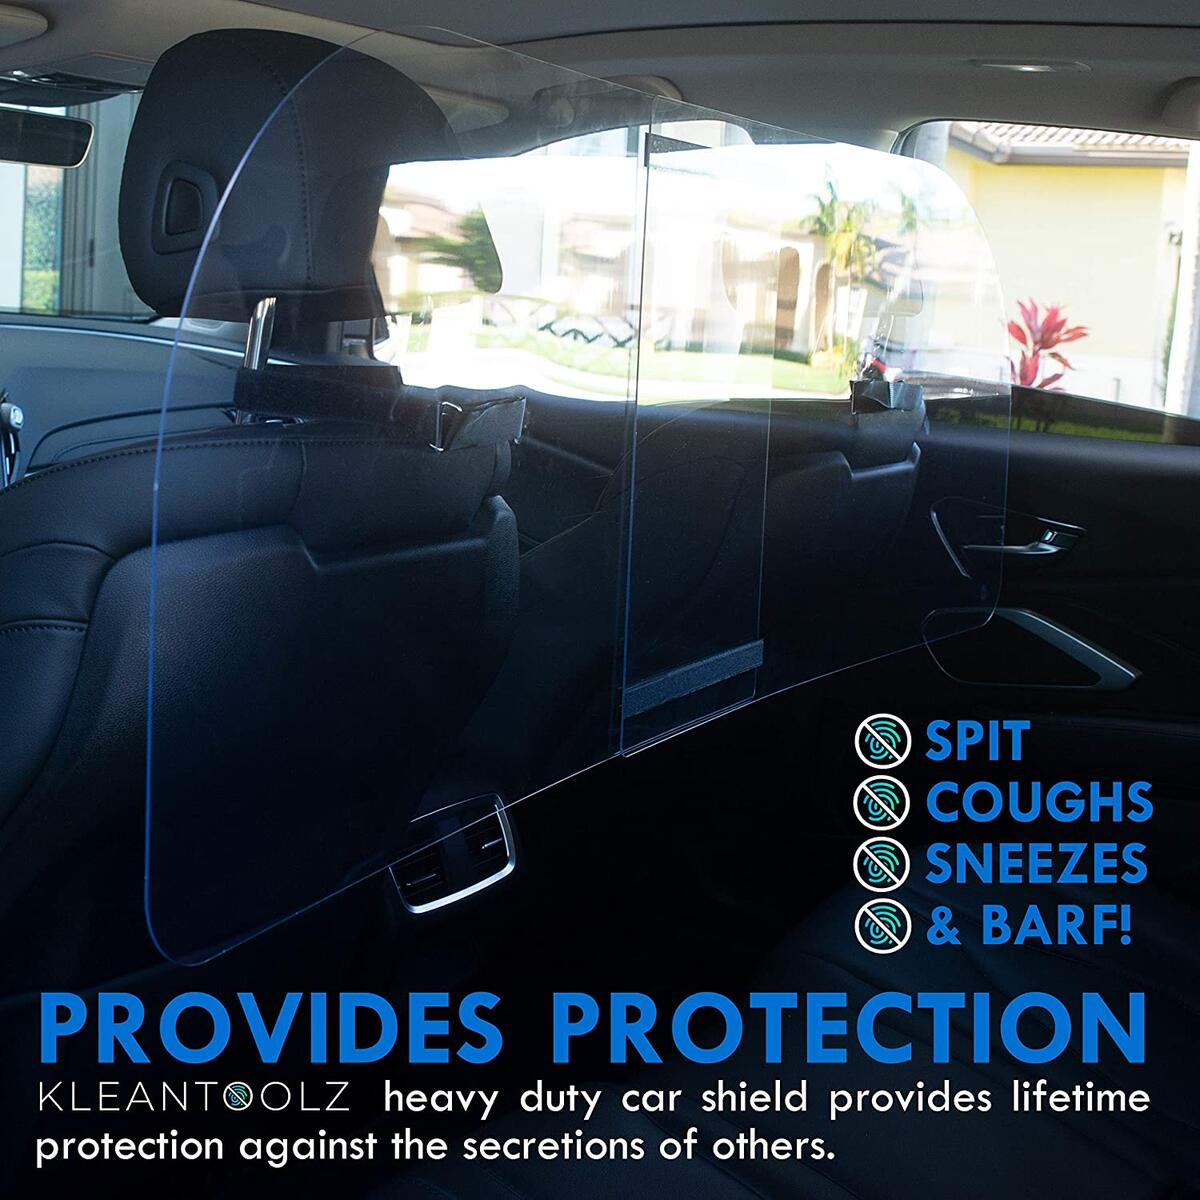 Kleantoolz Sneeze Guard Clear Acrylic Car Shield for Rideshare Services. Large PET Plexiglass Sheet with Microfiber Cleaning Cloth. Plastic Barrier and Germ Droplet Guard for Taxi, Lyft, Uber Driver.